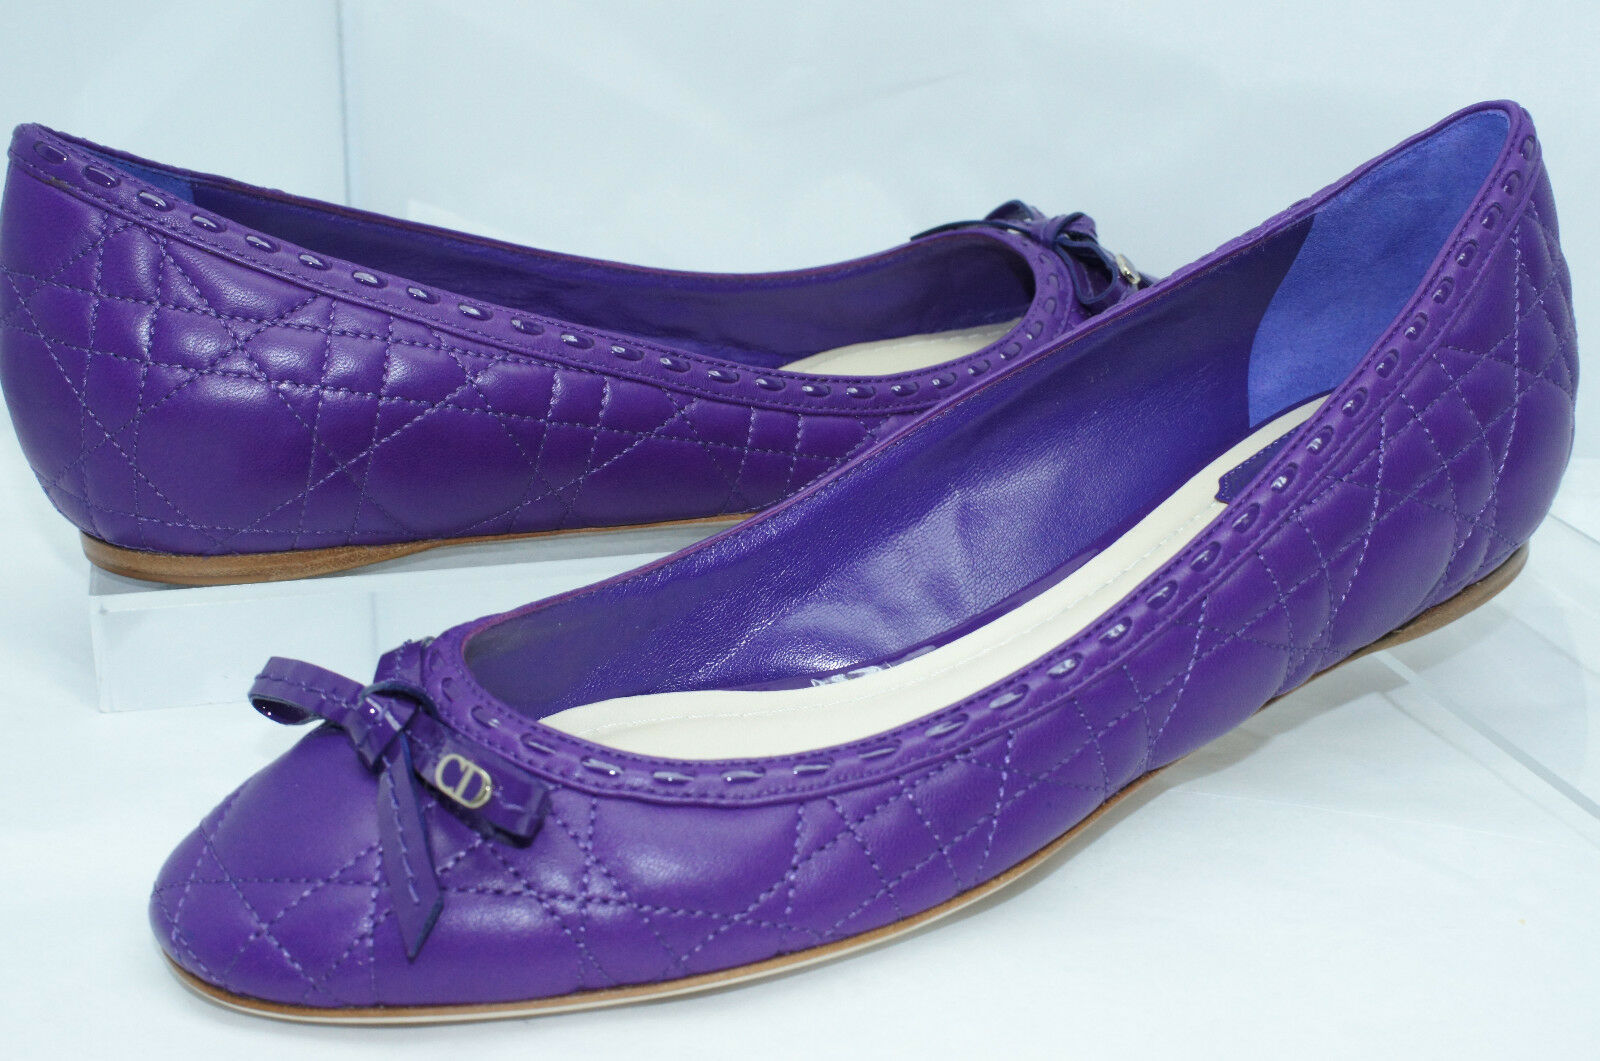 New Christian Dior shoes Ballerina Flats Size 38.5 Women's Purple Sale Gift